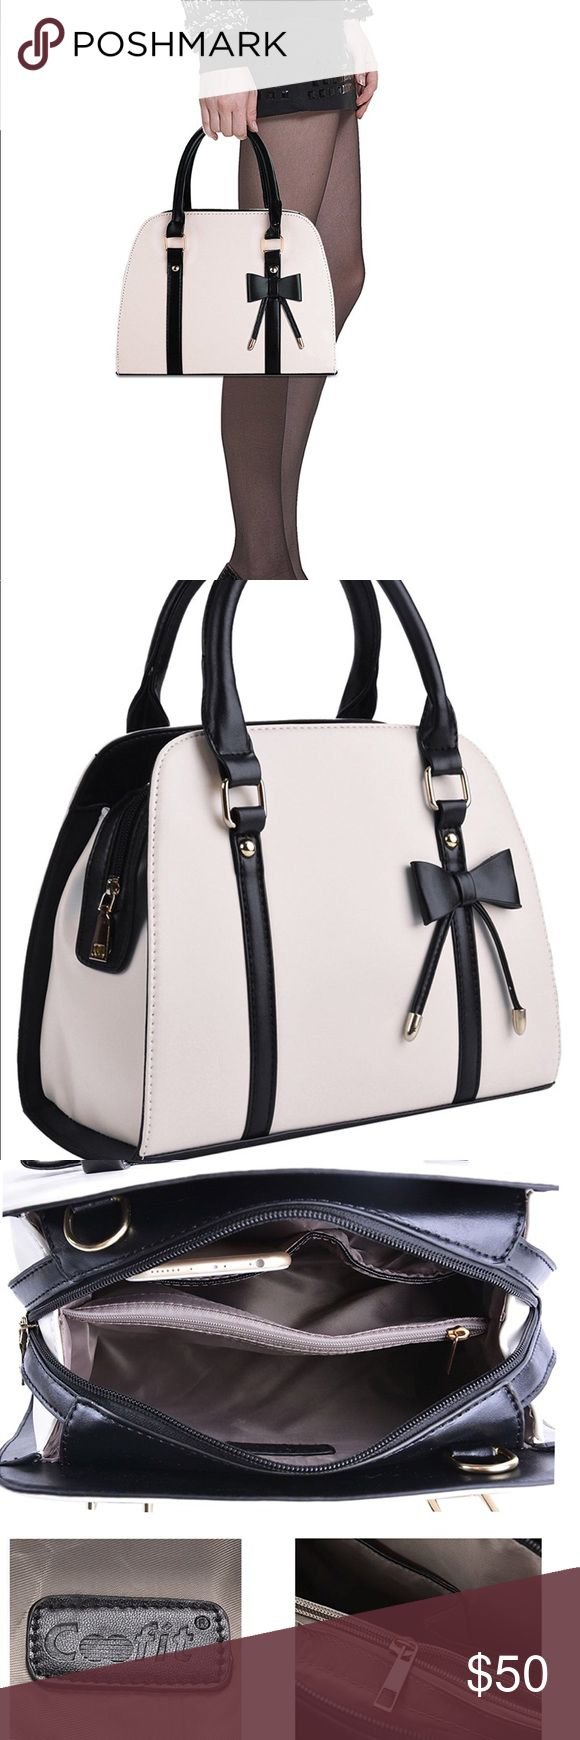 Cute Black & Cream Bow Purse Adorable and classy purse, very roomy and sturdy. Three pockets, 2 handles and an adjustable strap so that it can be worn like a Crossbody. Dimensions: 13.4 x 5.9 x 9.8. Smoke-free home. Quality faux-leather. Bags Shoulder Bags